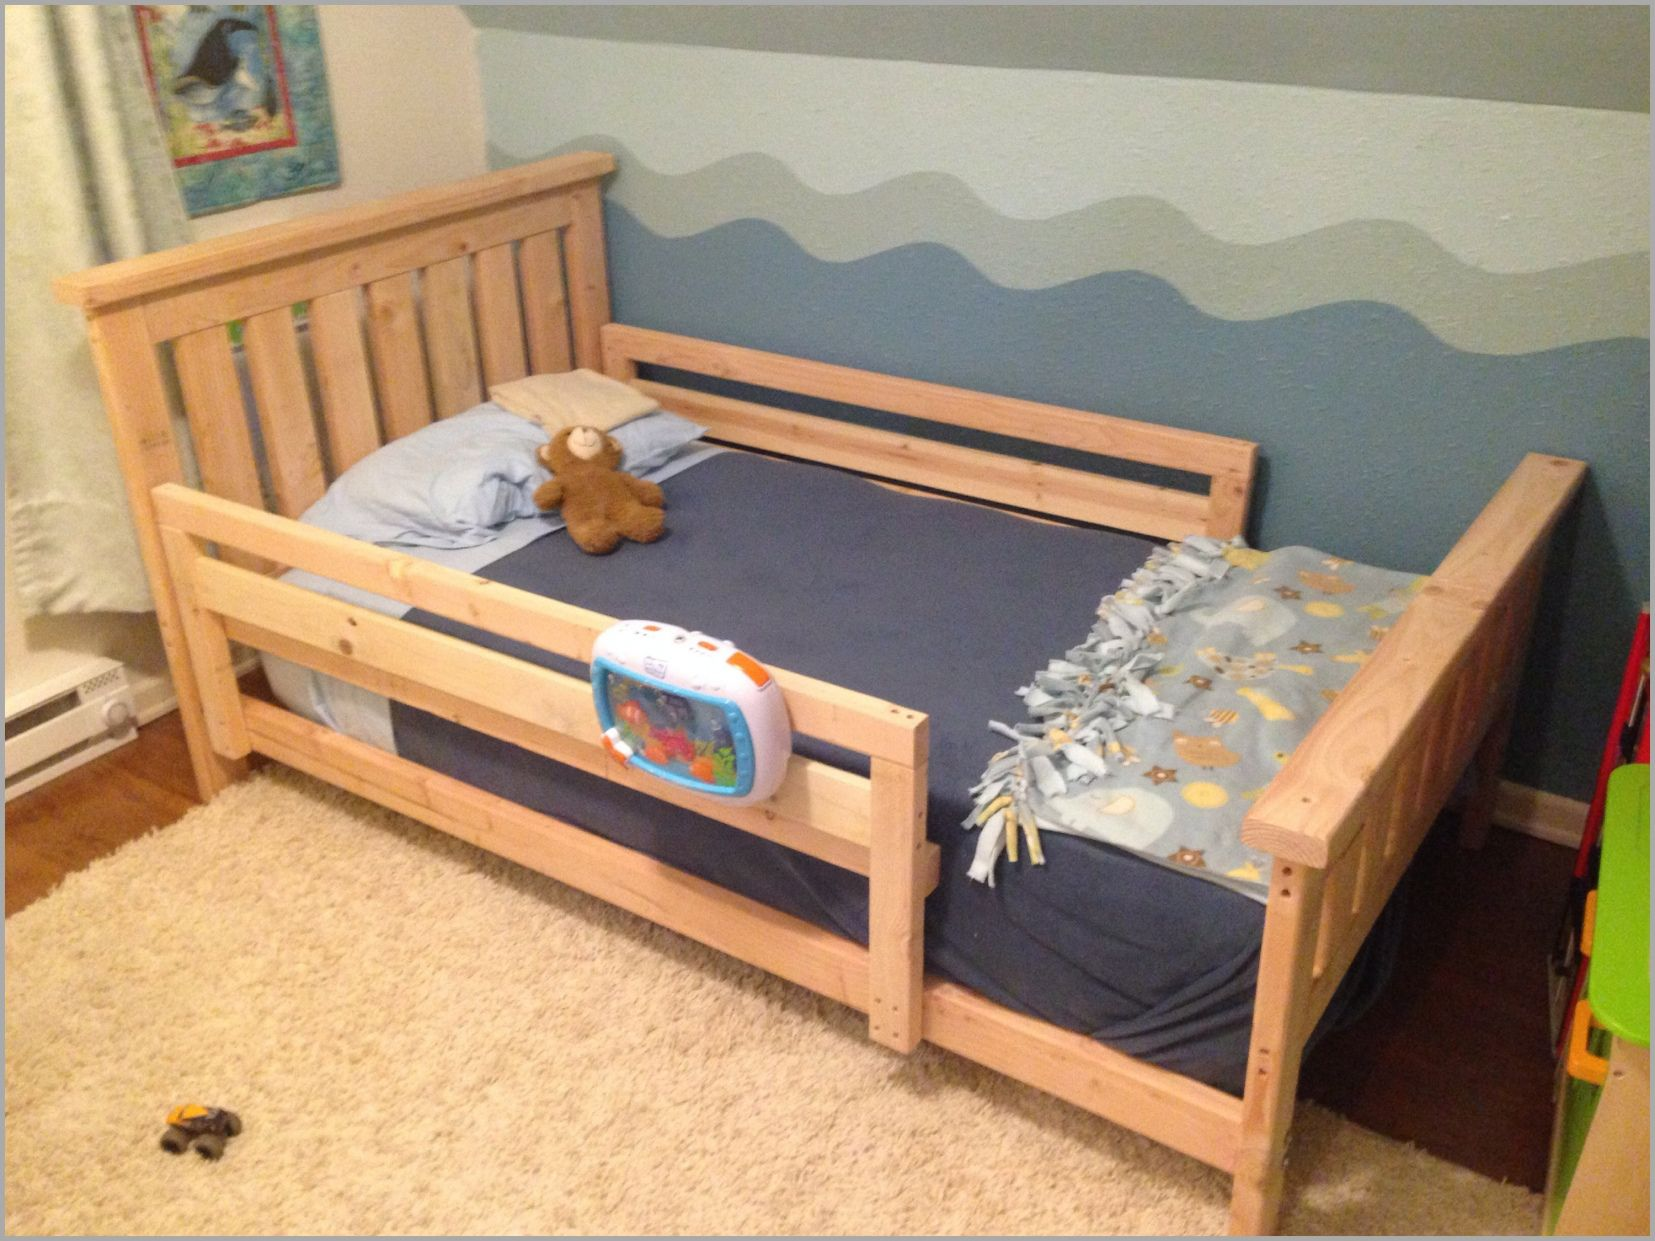 2019 twin beds with rails for toddlers master bedroom closet ideas check more at http davidhyounglaw com 201 diy toddler bed kids grey carpet blue walls